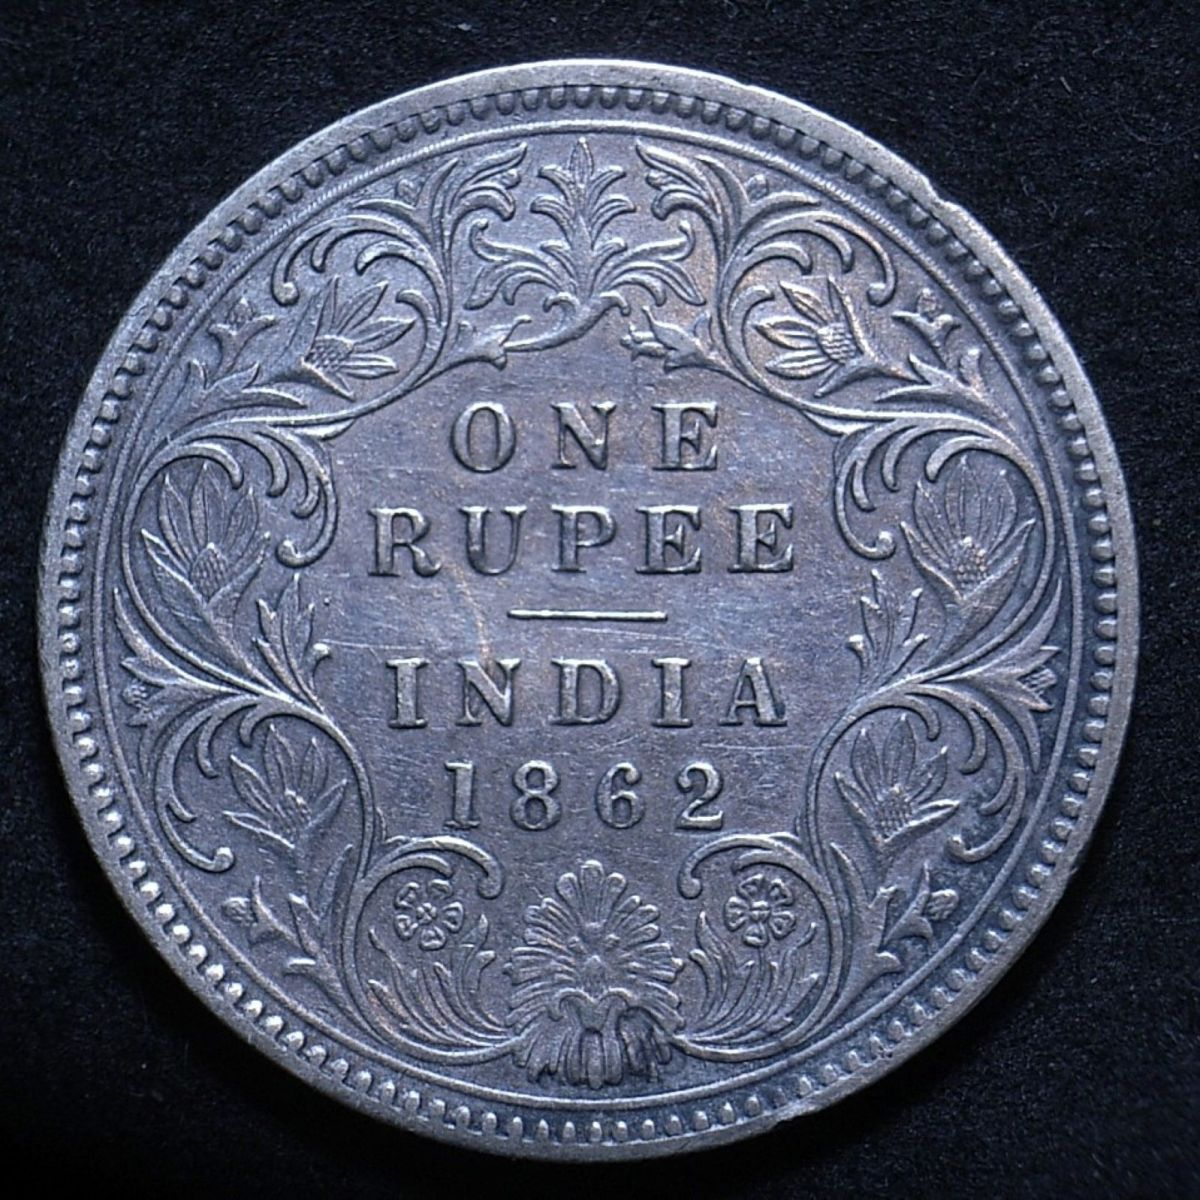 Close up of Indian 1862 rupee reverse showing the coin's detail